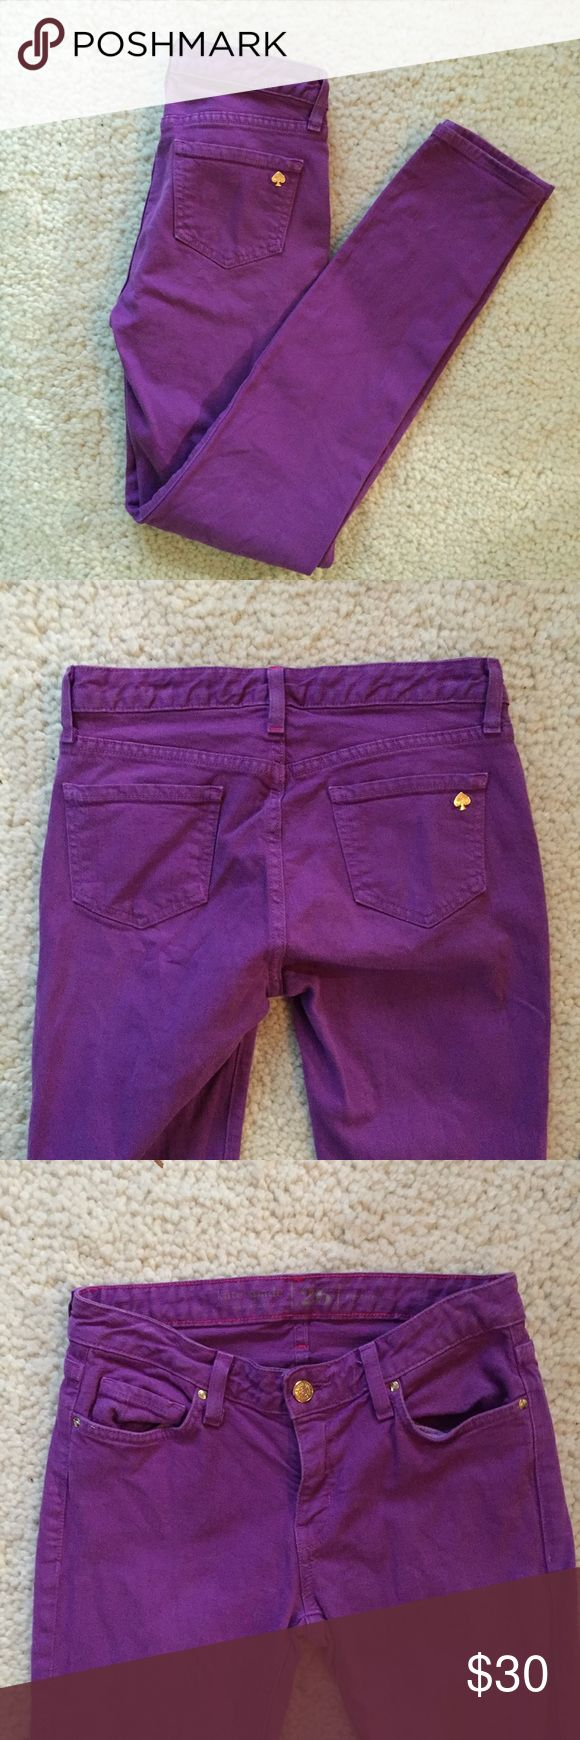 Kate Spade Purple Skinny Jeans Size 26 Very good condition skinny jeans. Color purple. Inseam 30.25 inches.  Waist measures 14.5 inches across. kate spade Jeans Skinny